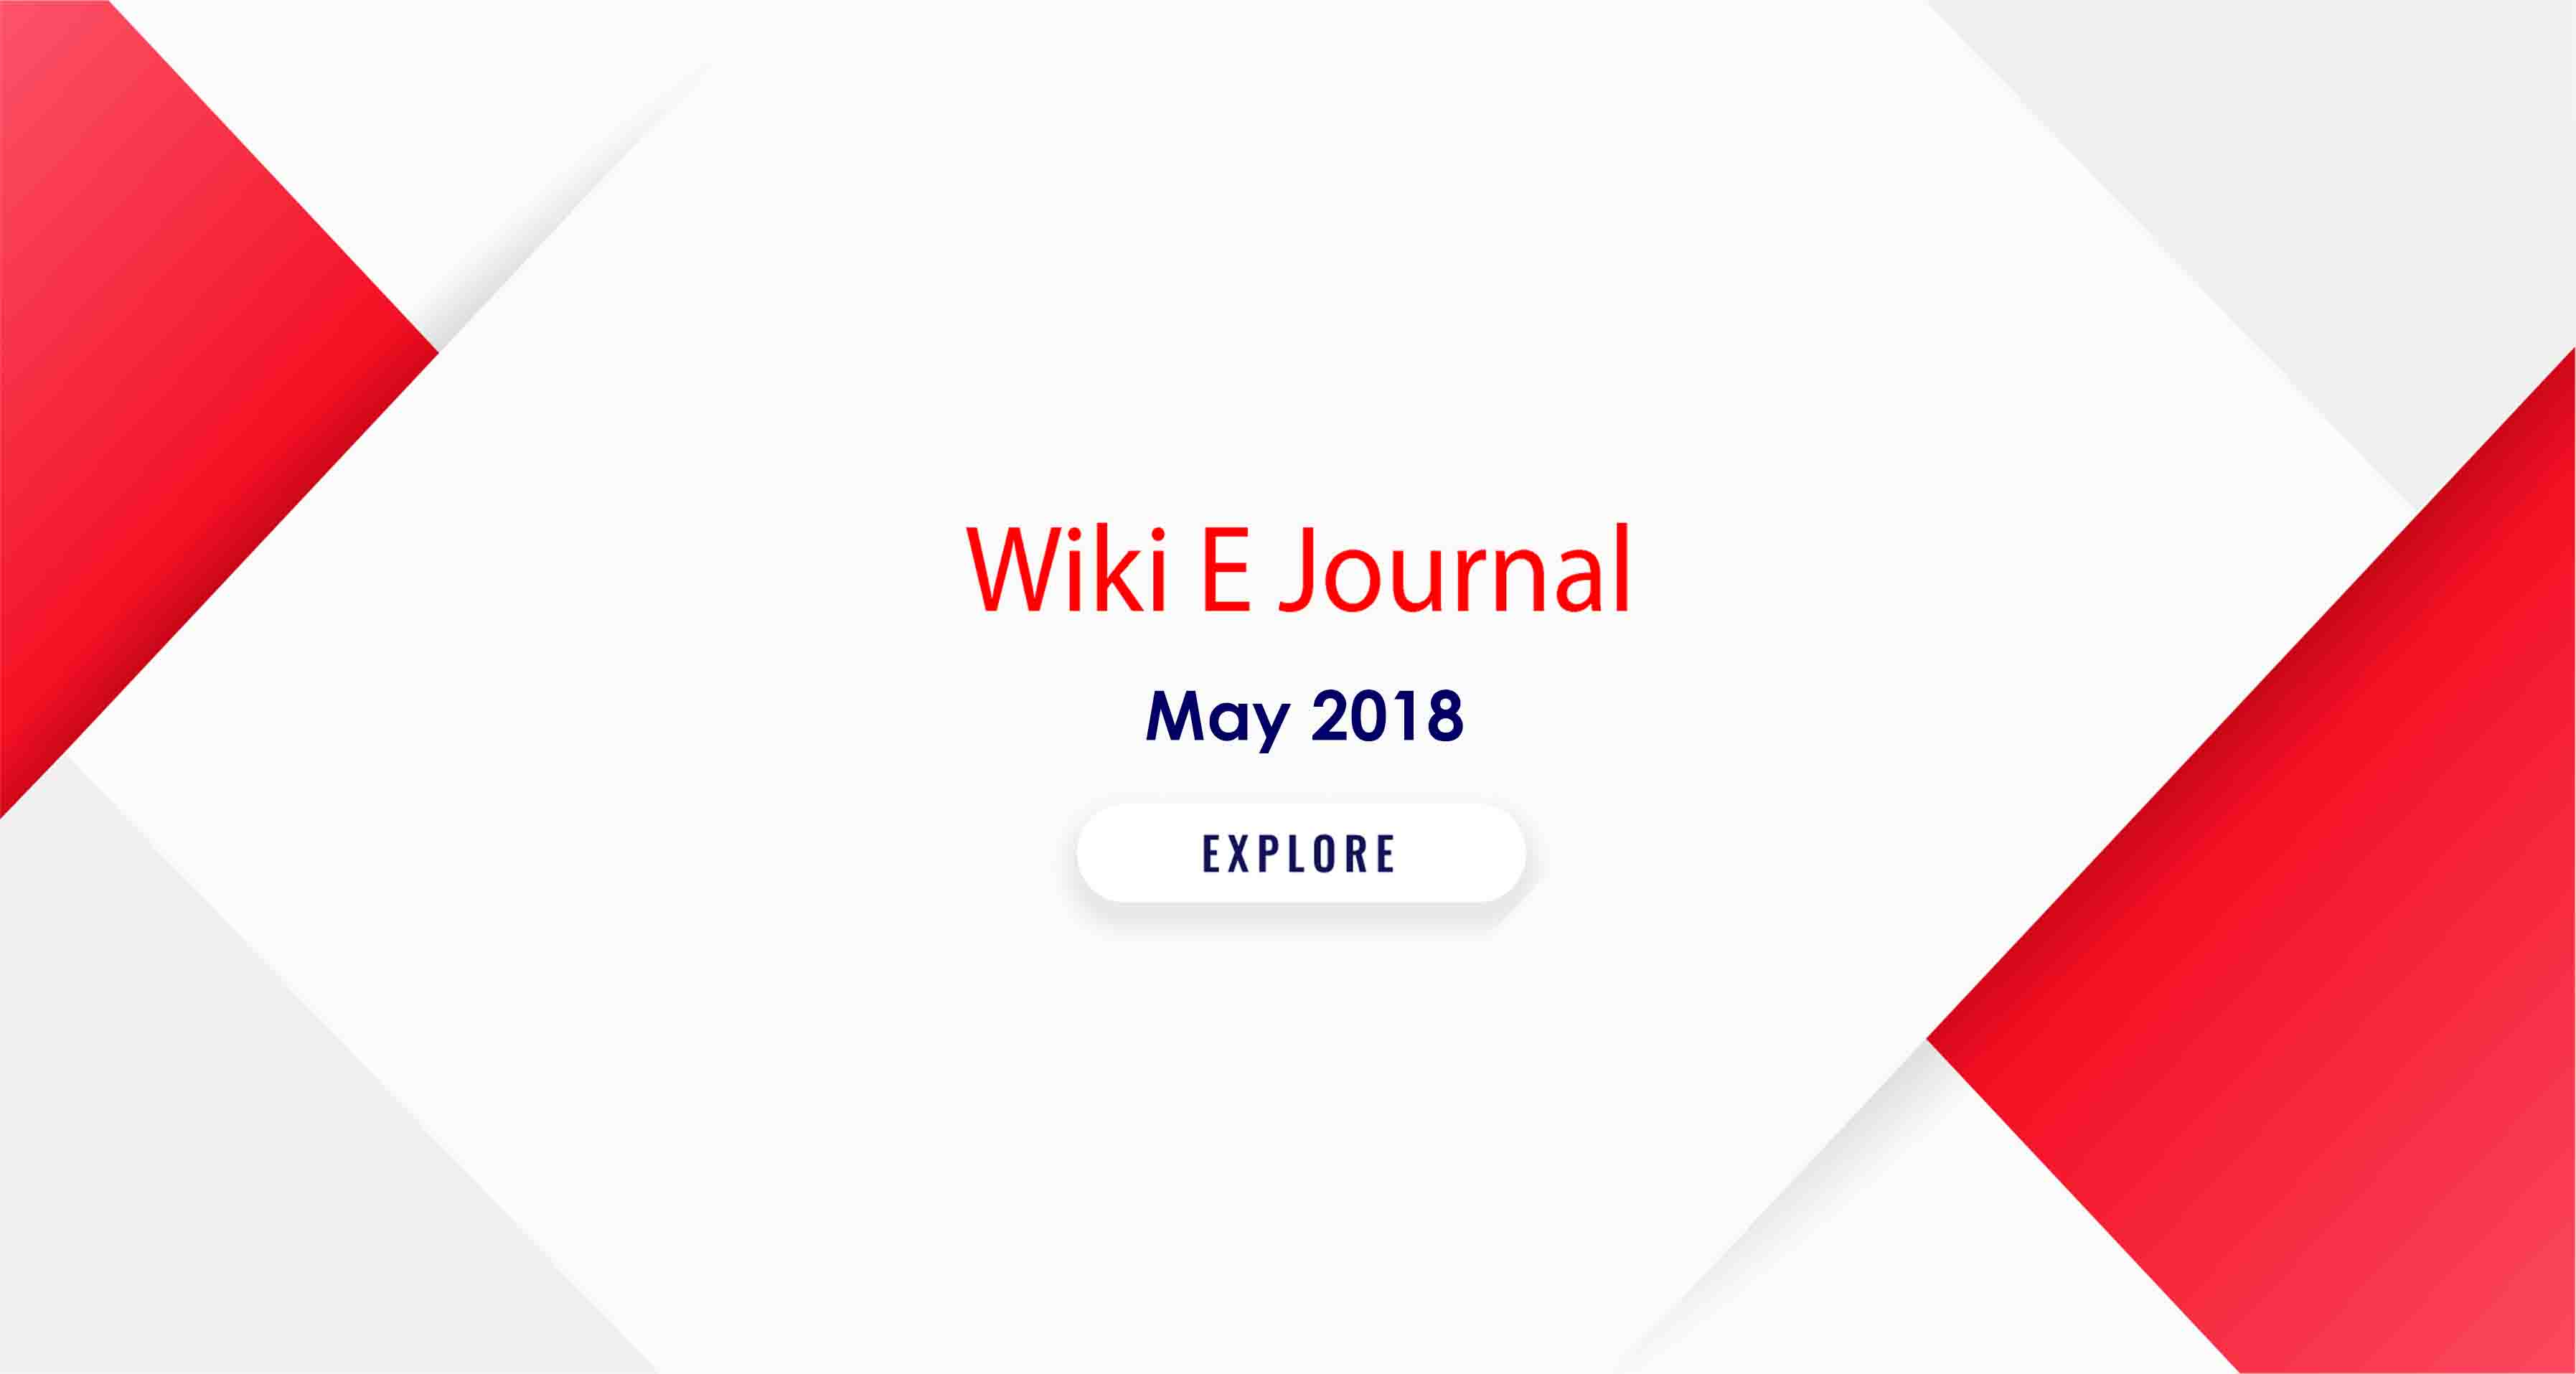 SBS WIKI E JOURNAL MAY 2018